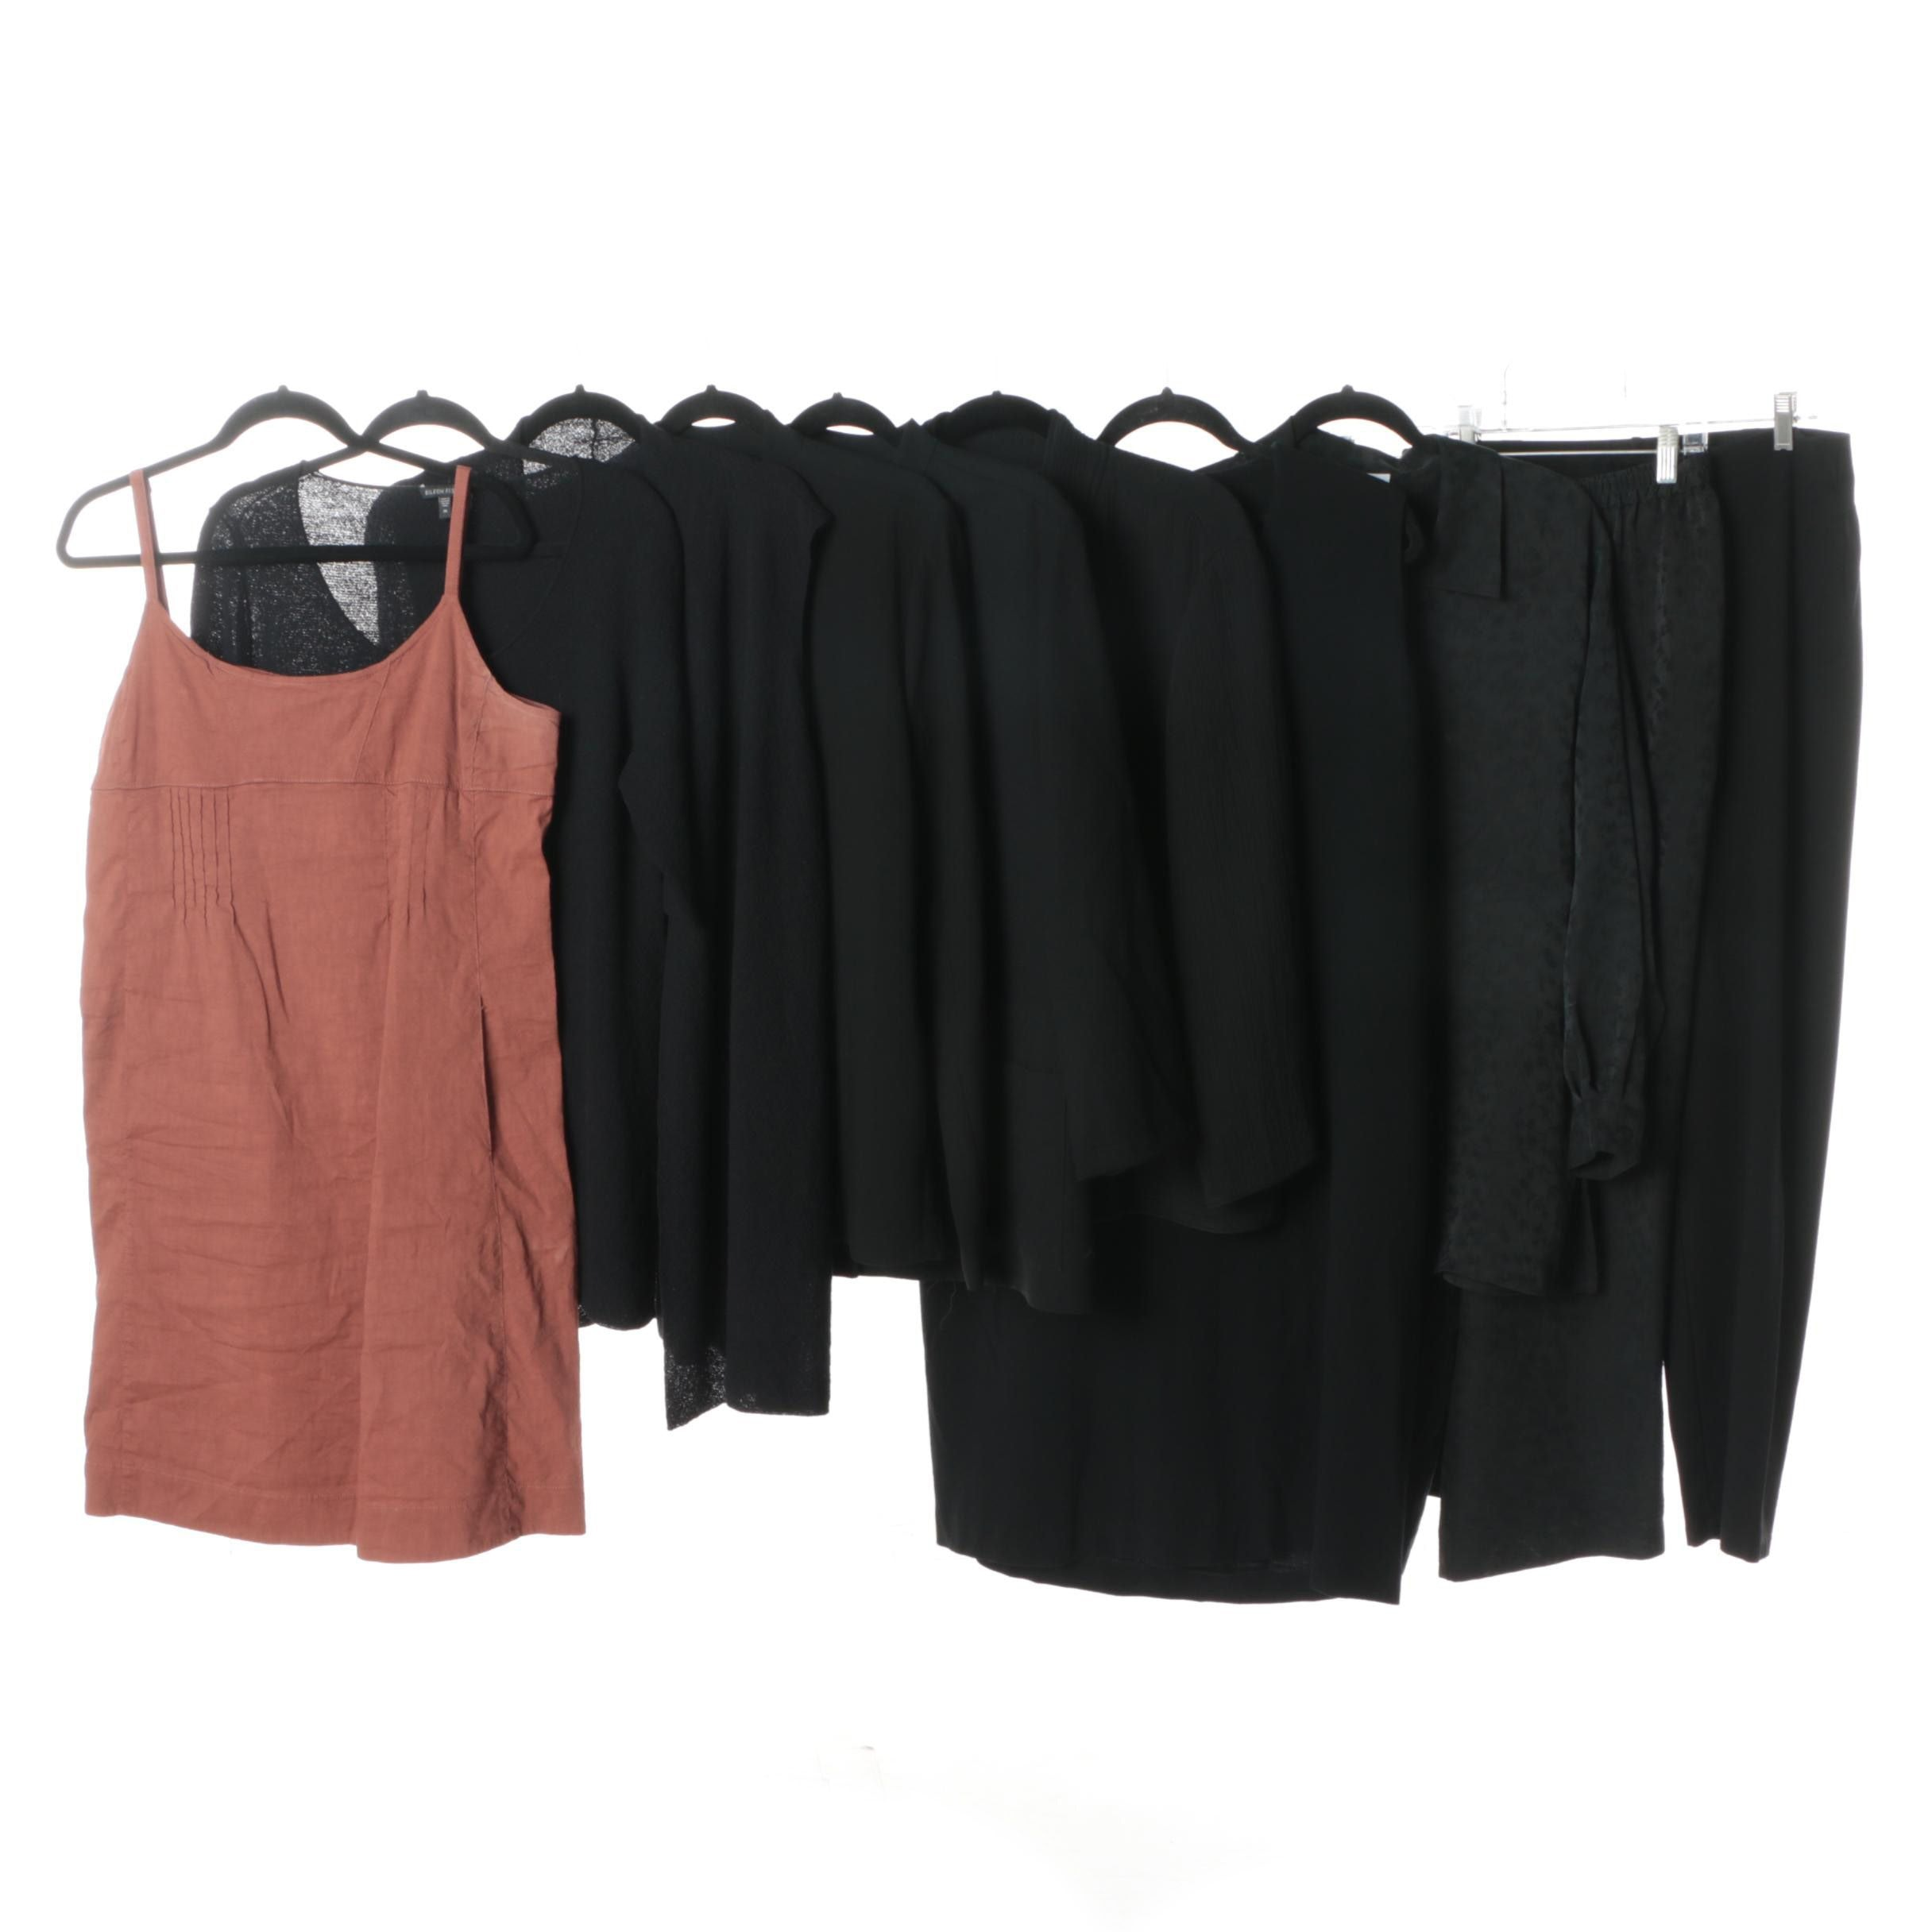 Women's Eileen Fisher Clothing Separates